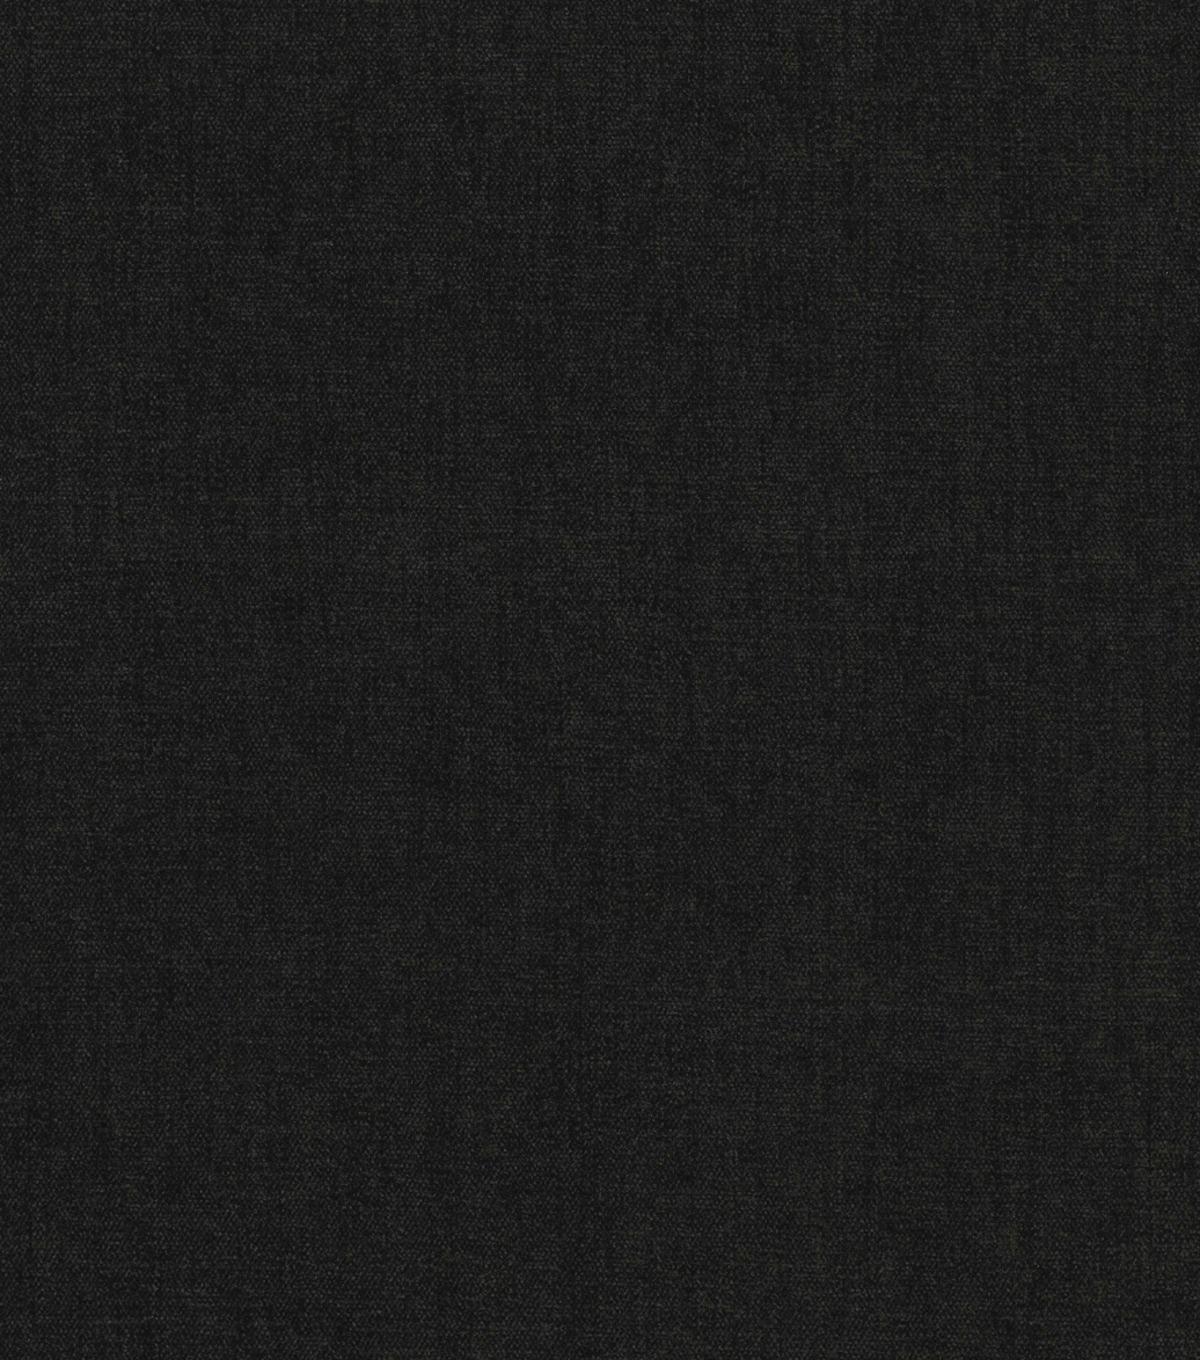 Home Decor 8\u0022x8\u0022 Fabric Swatch-Charisma Onyx